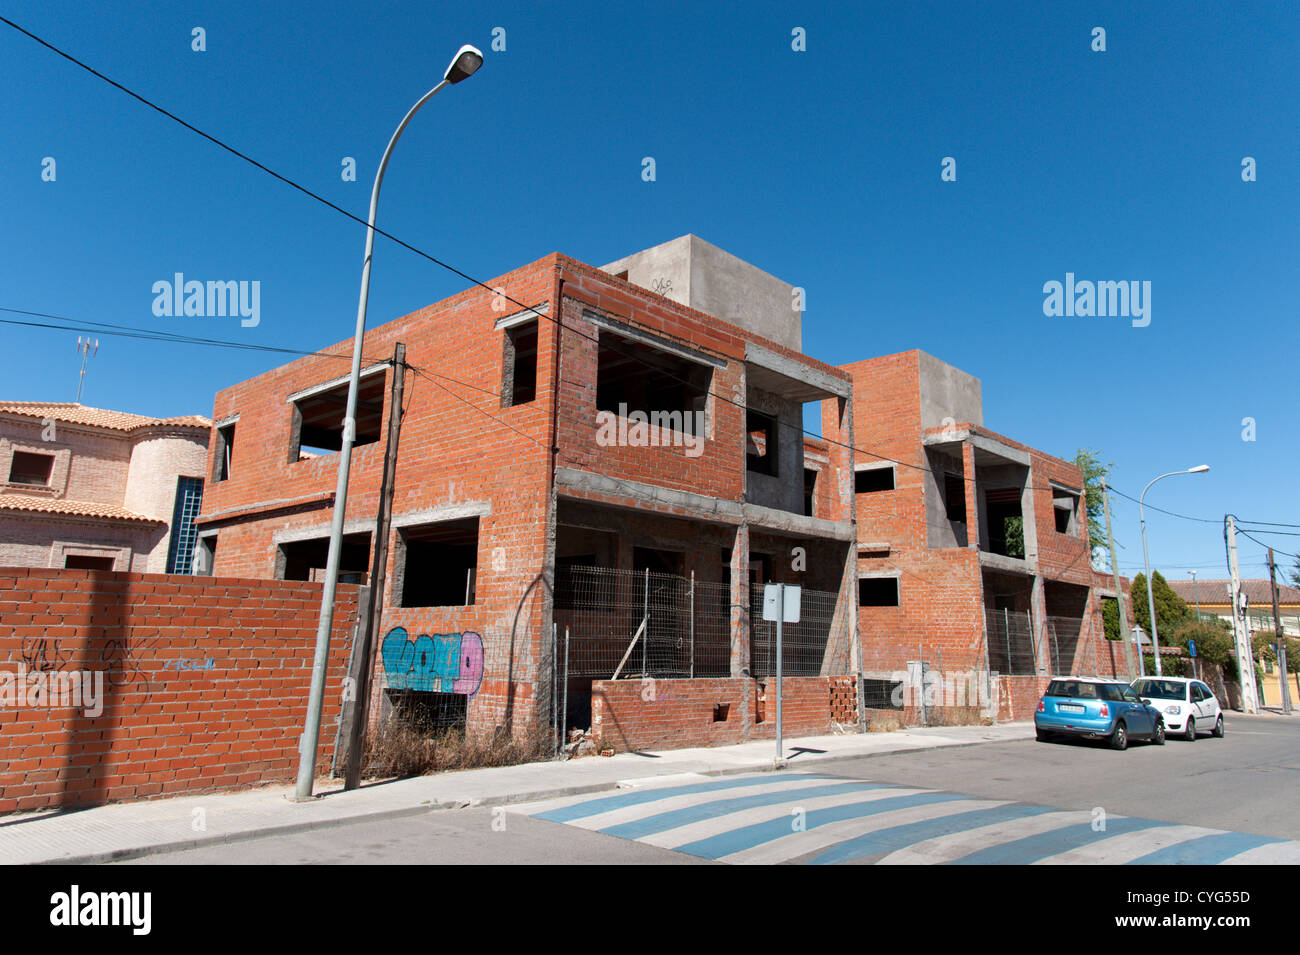 Unfinished housing development in Seseña, Spain - Stock Image